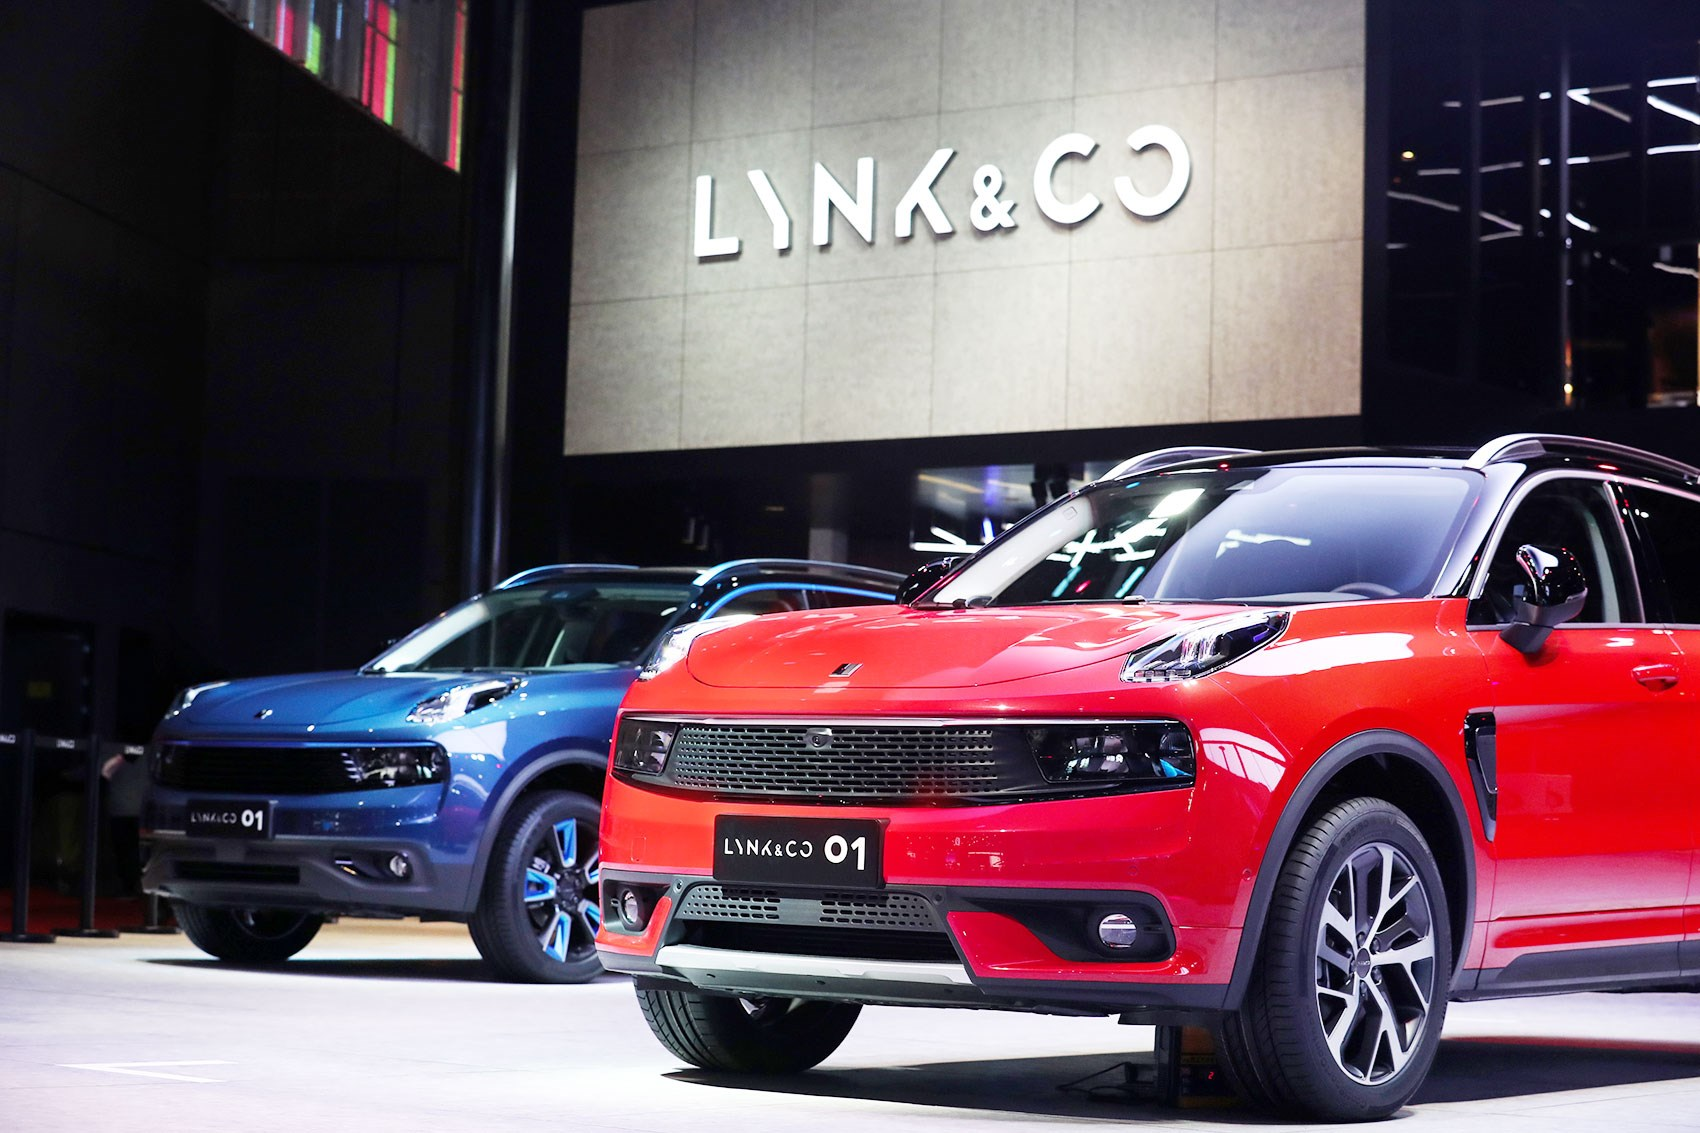 new lynk co 01 production car and 03 concept at 2017 shanghai motor show revealed in pictures. Black Bedroom Furniture Sets. Home Design Ideas